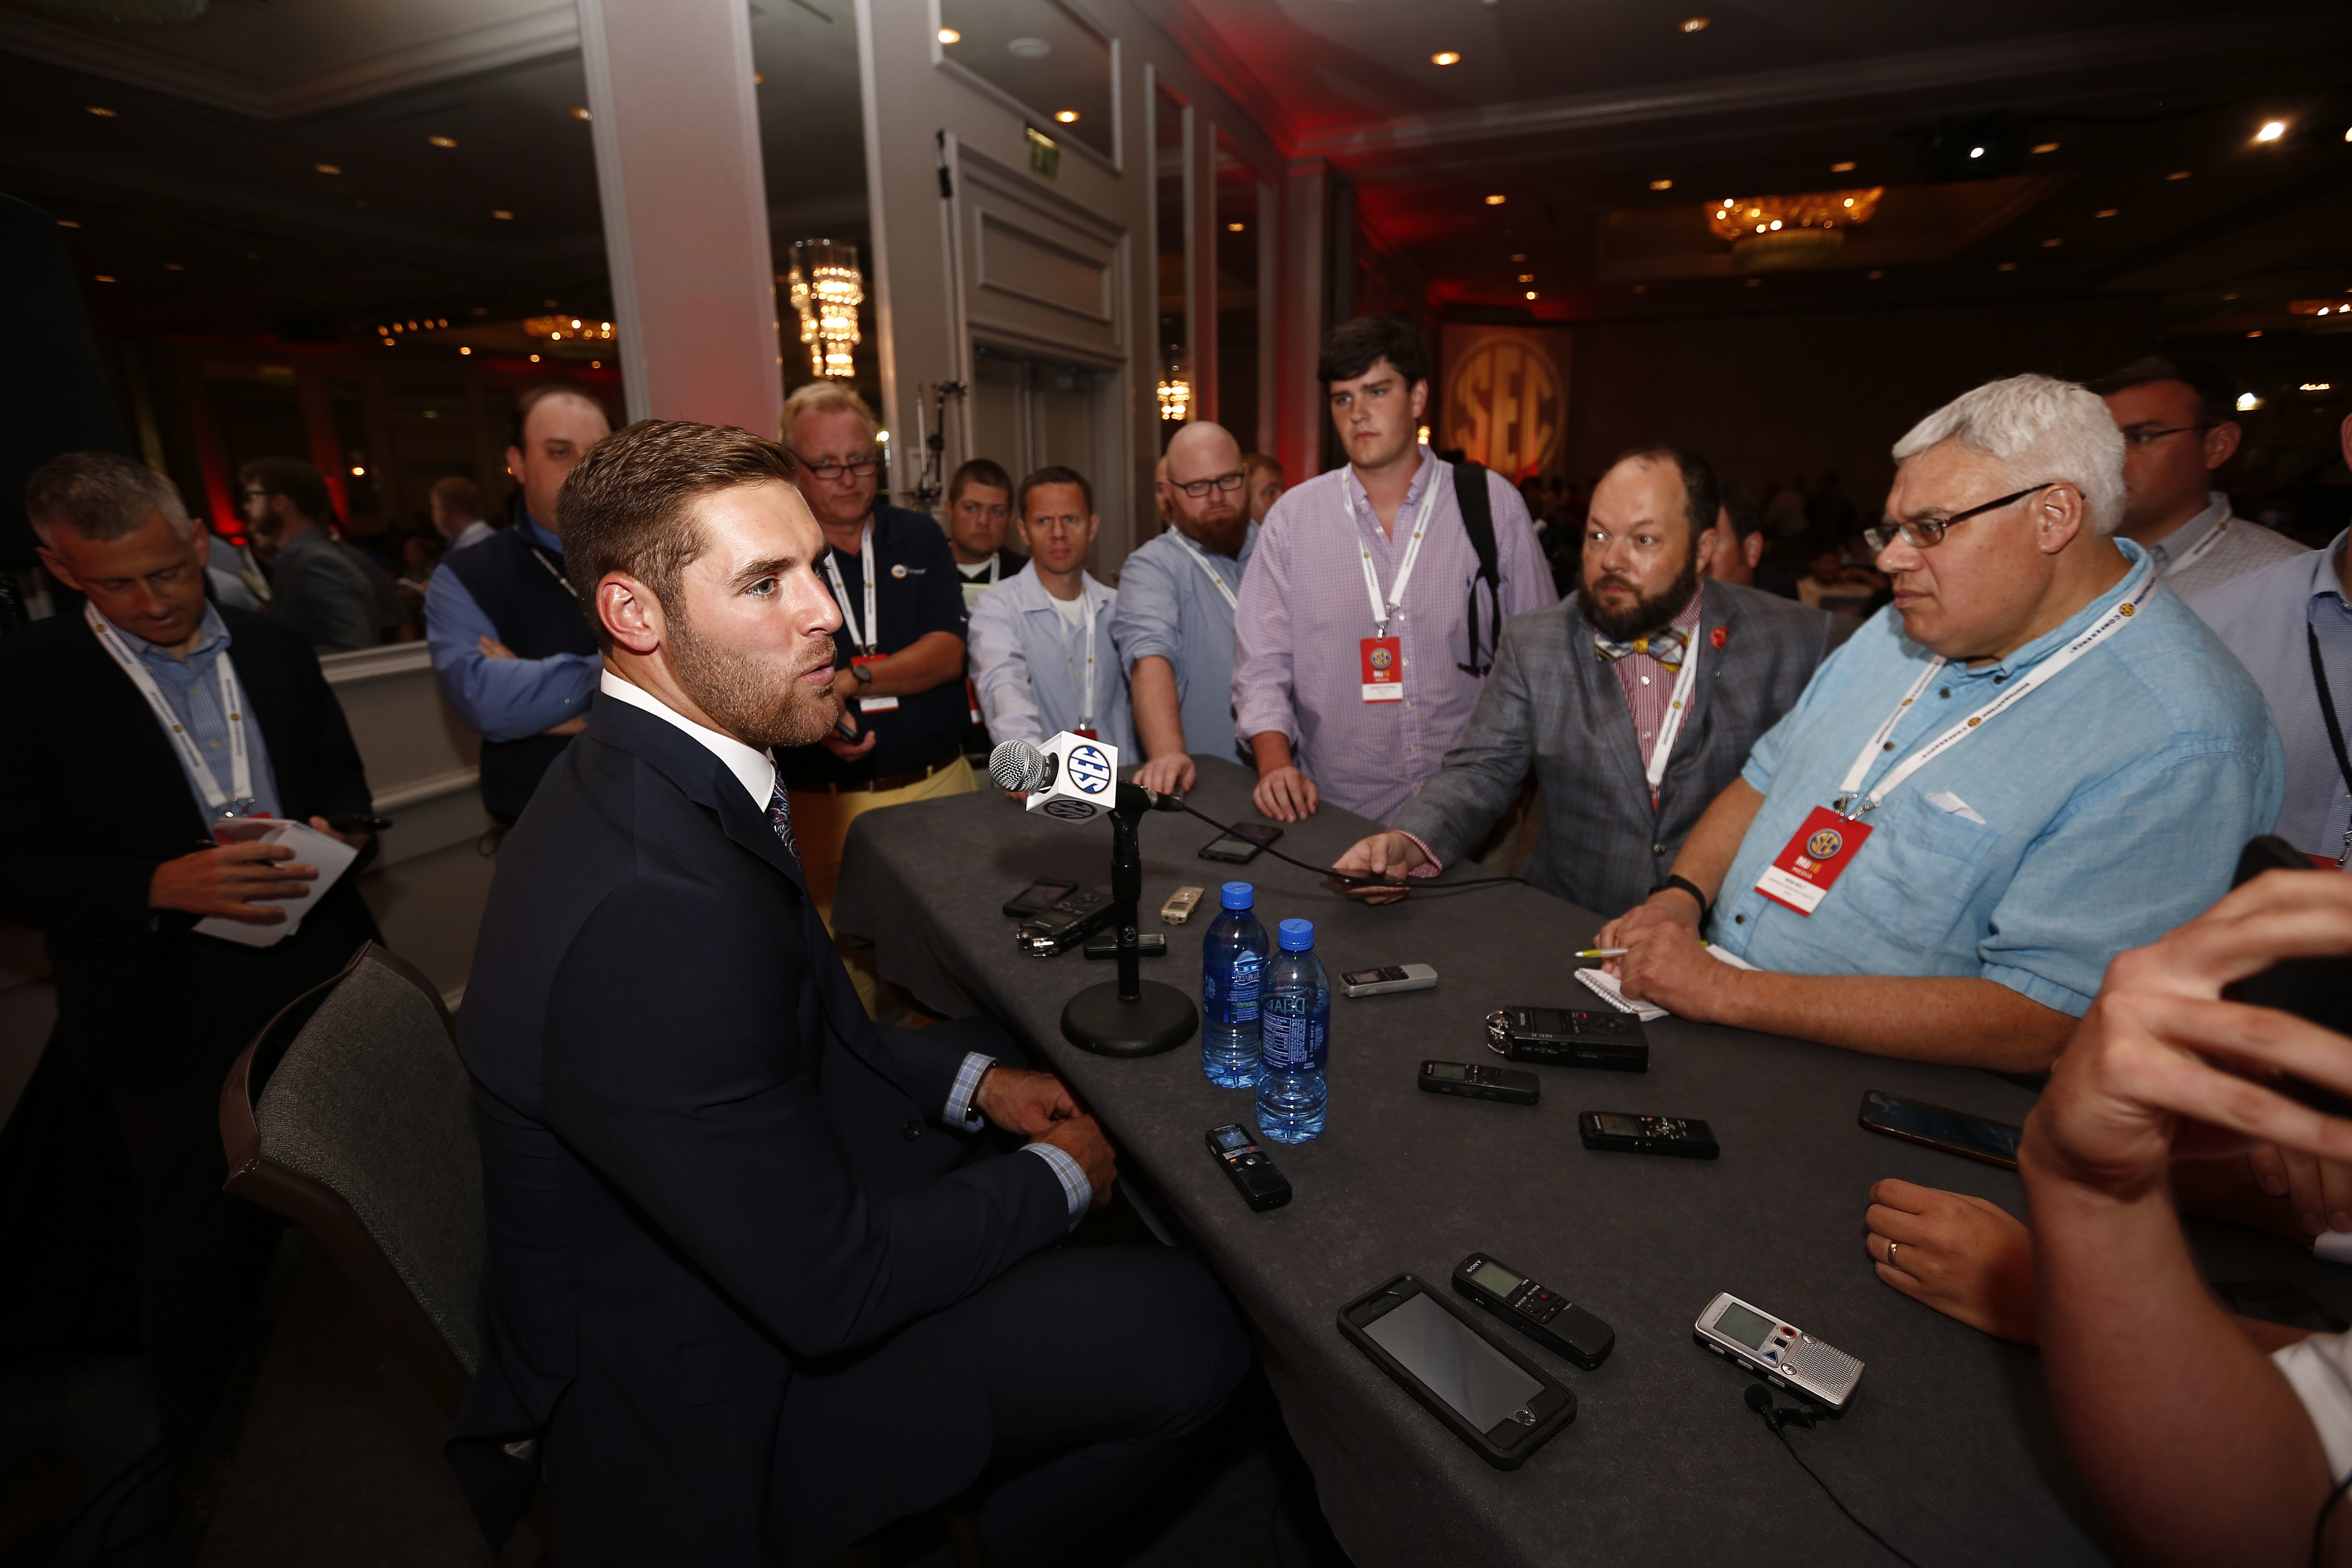 FILE - In this July 12, 2016, file photo, Texas A&M quarterback Trevor Knight speaks to the media at the Southeastern Conference NCAA college football media days, in Hoover, Ala. Texas A&M's defense should be just fine with Myles Garrett and Daeshon Hall